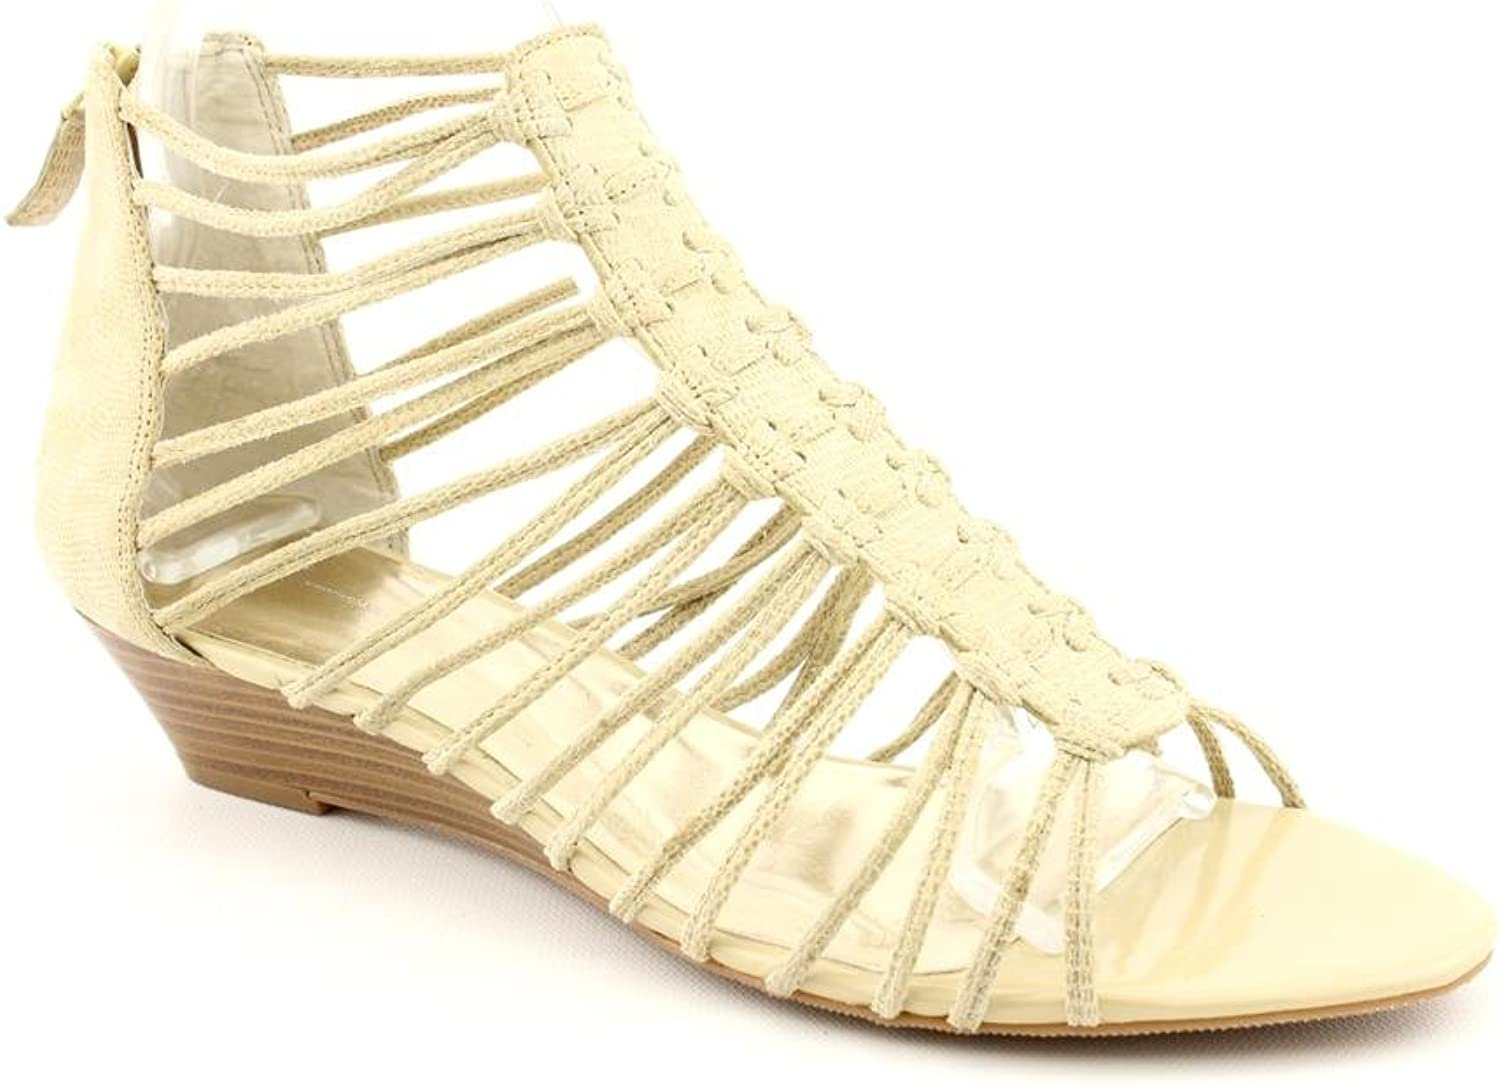 INC International Concepts Rory Womens Size 9.5 Beige Wedge Sandals shoes